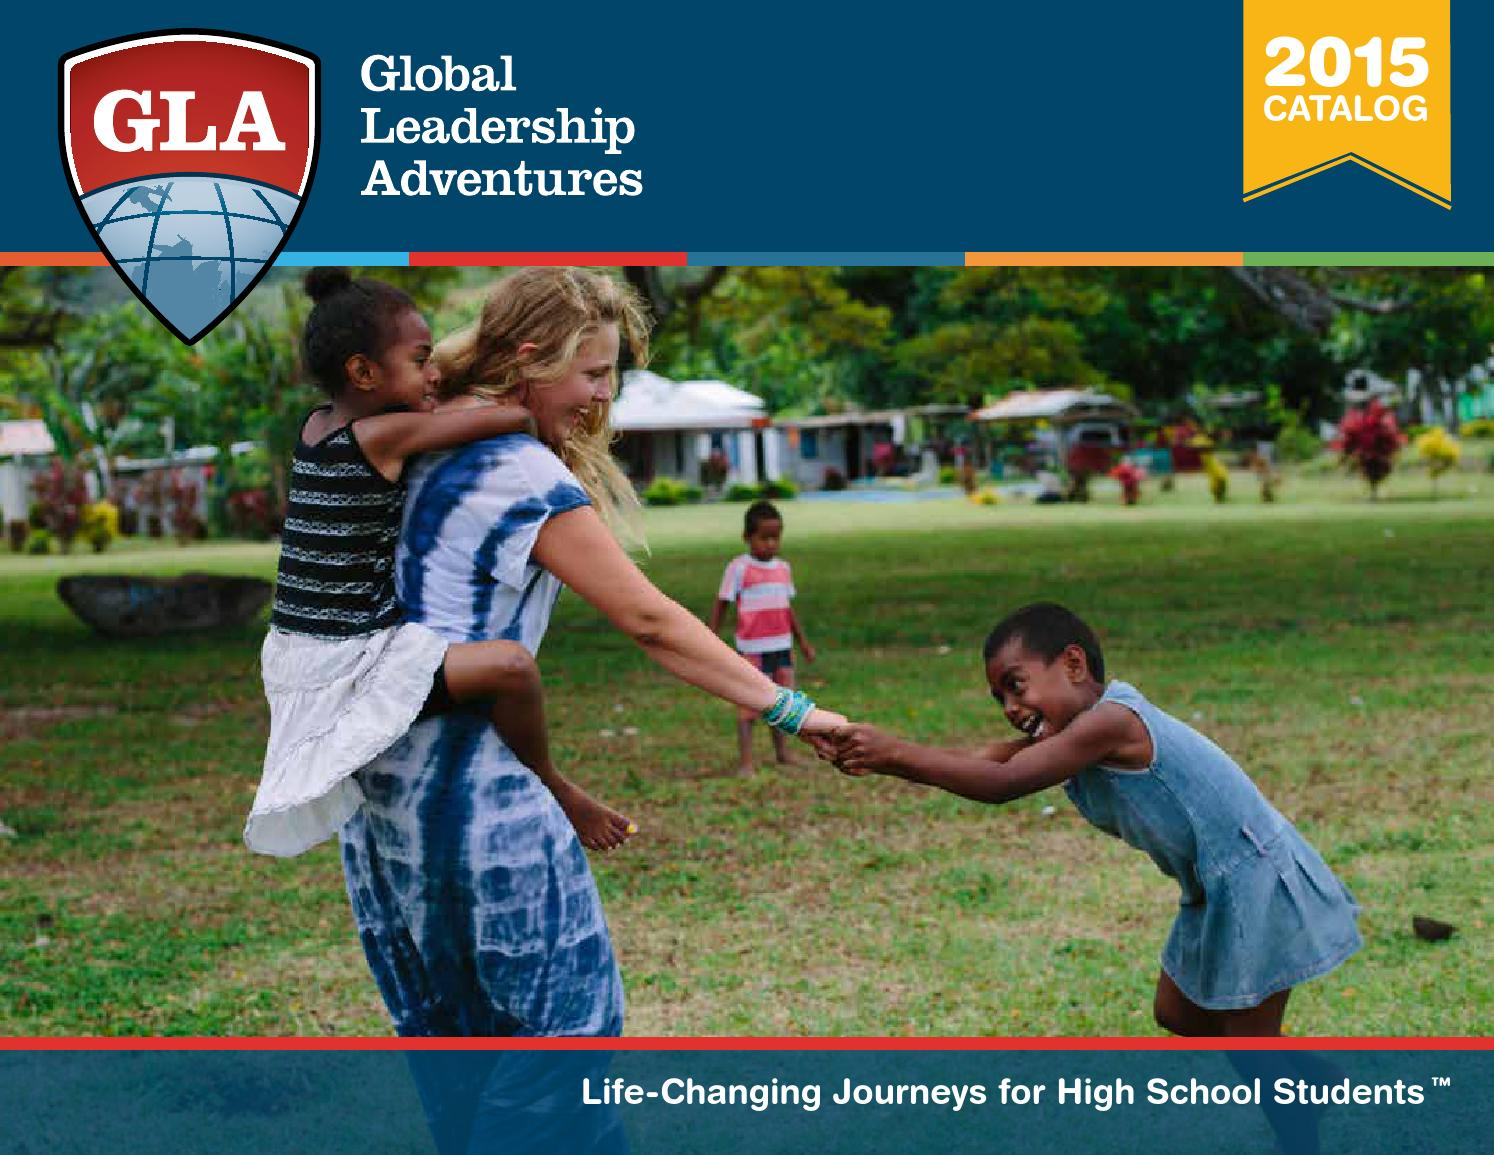 global leadership essay Global leadership essay introduction people did not choose the place to live or the part of the country to occupy but they have found themselves in different parts of the world.